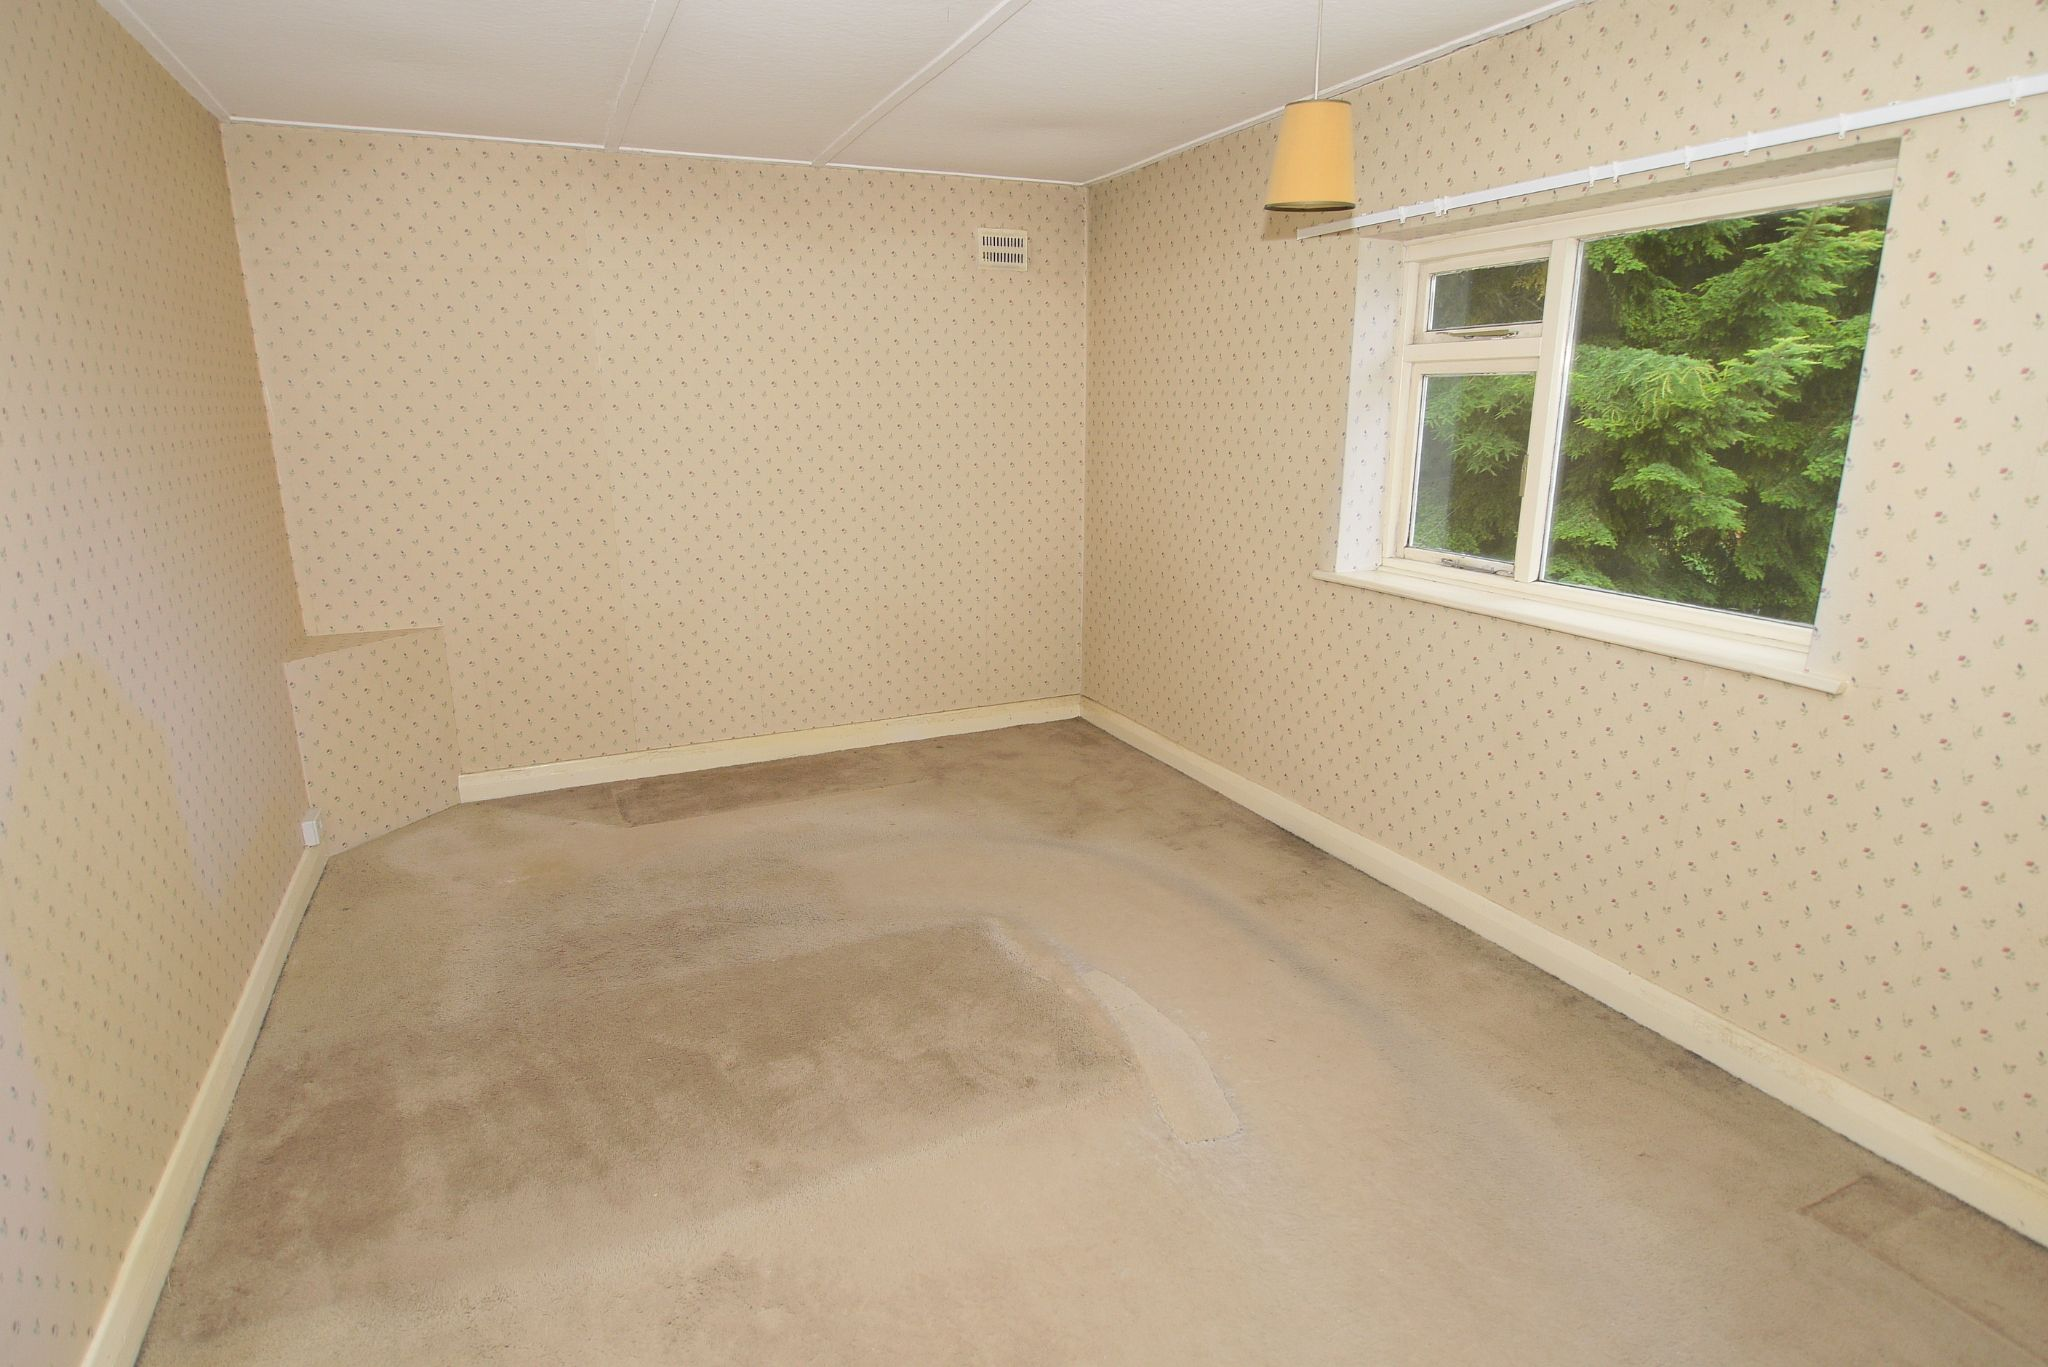 2 bedroom maisonette flat/apartment For Sale in Sevenoaks - Photograph 4